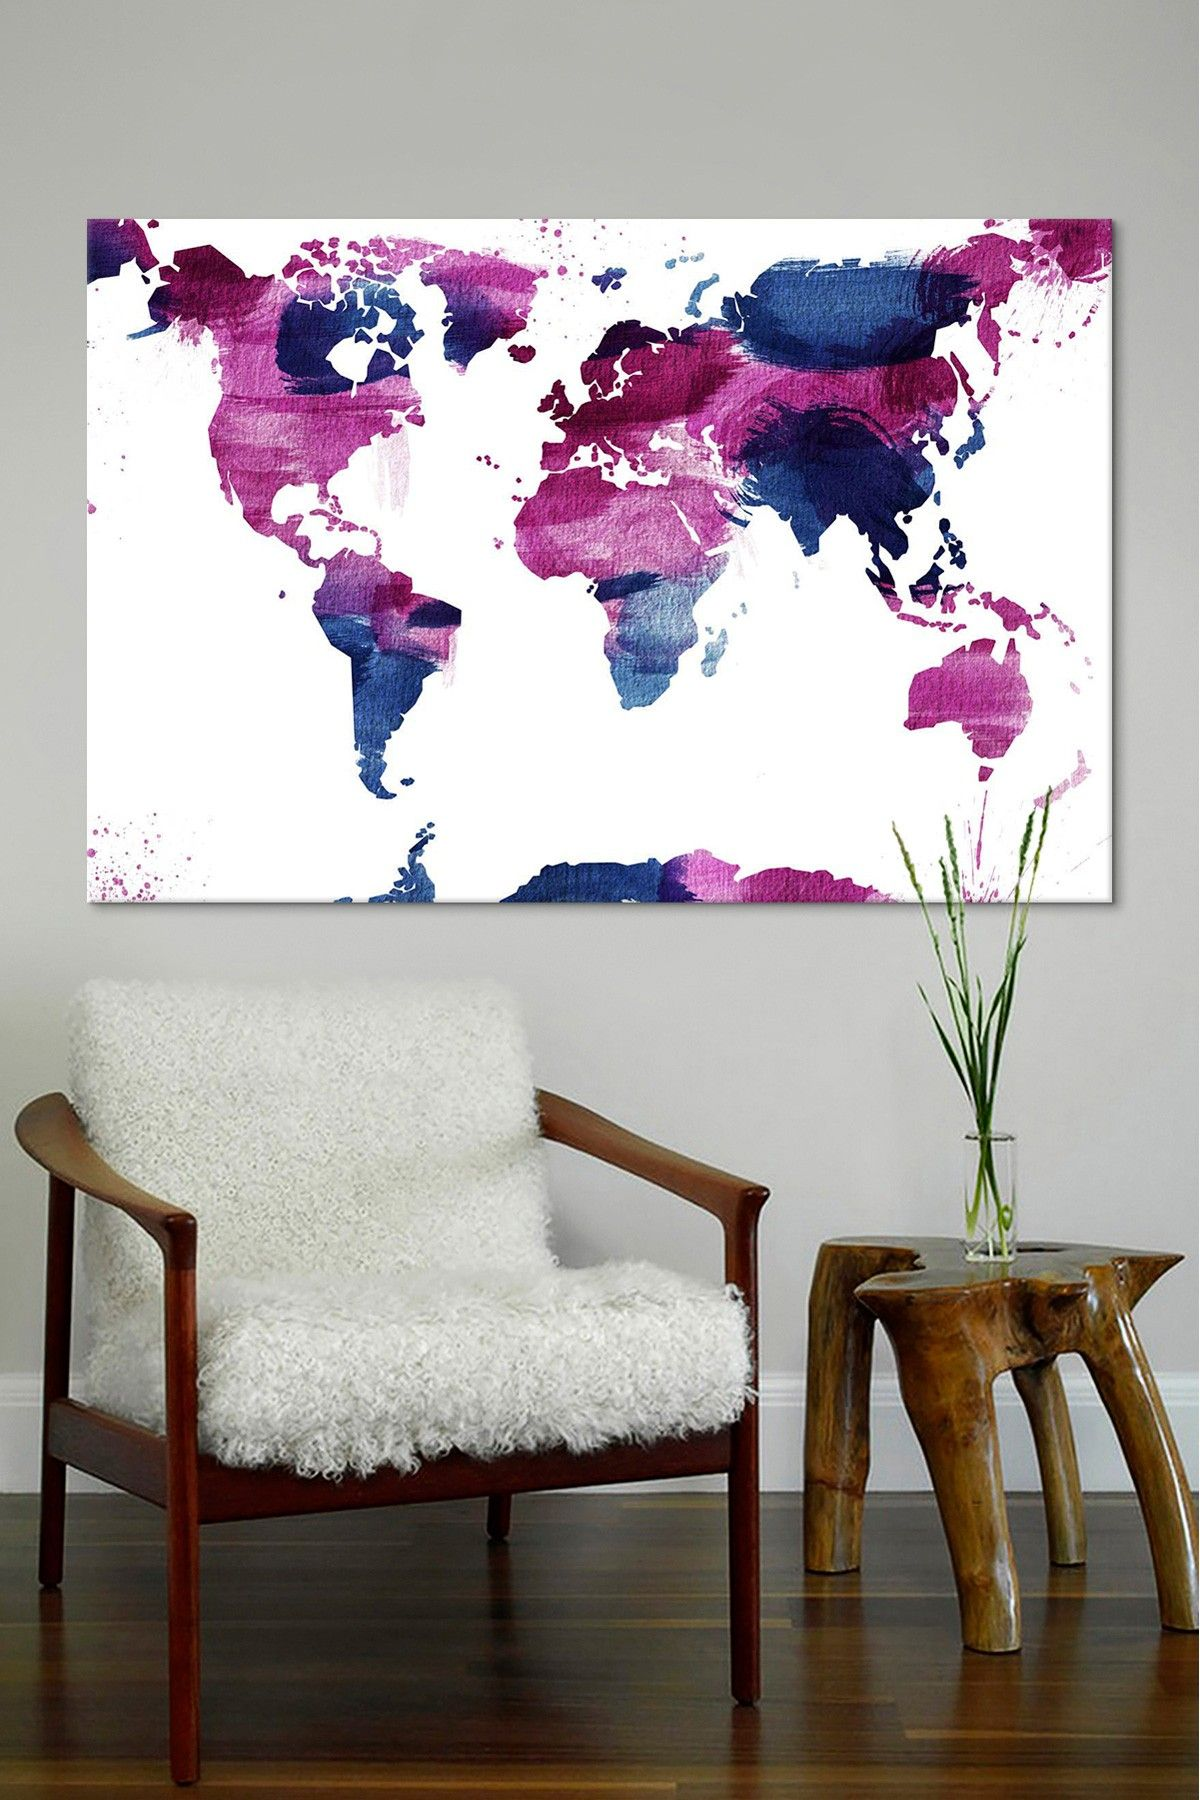 Watercolor world map canvas artlovely maps and travel watercolor world map canvas artlovely gumiabroncs Choice Image